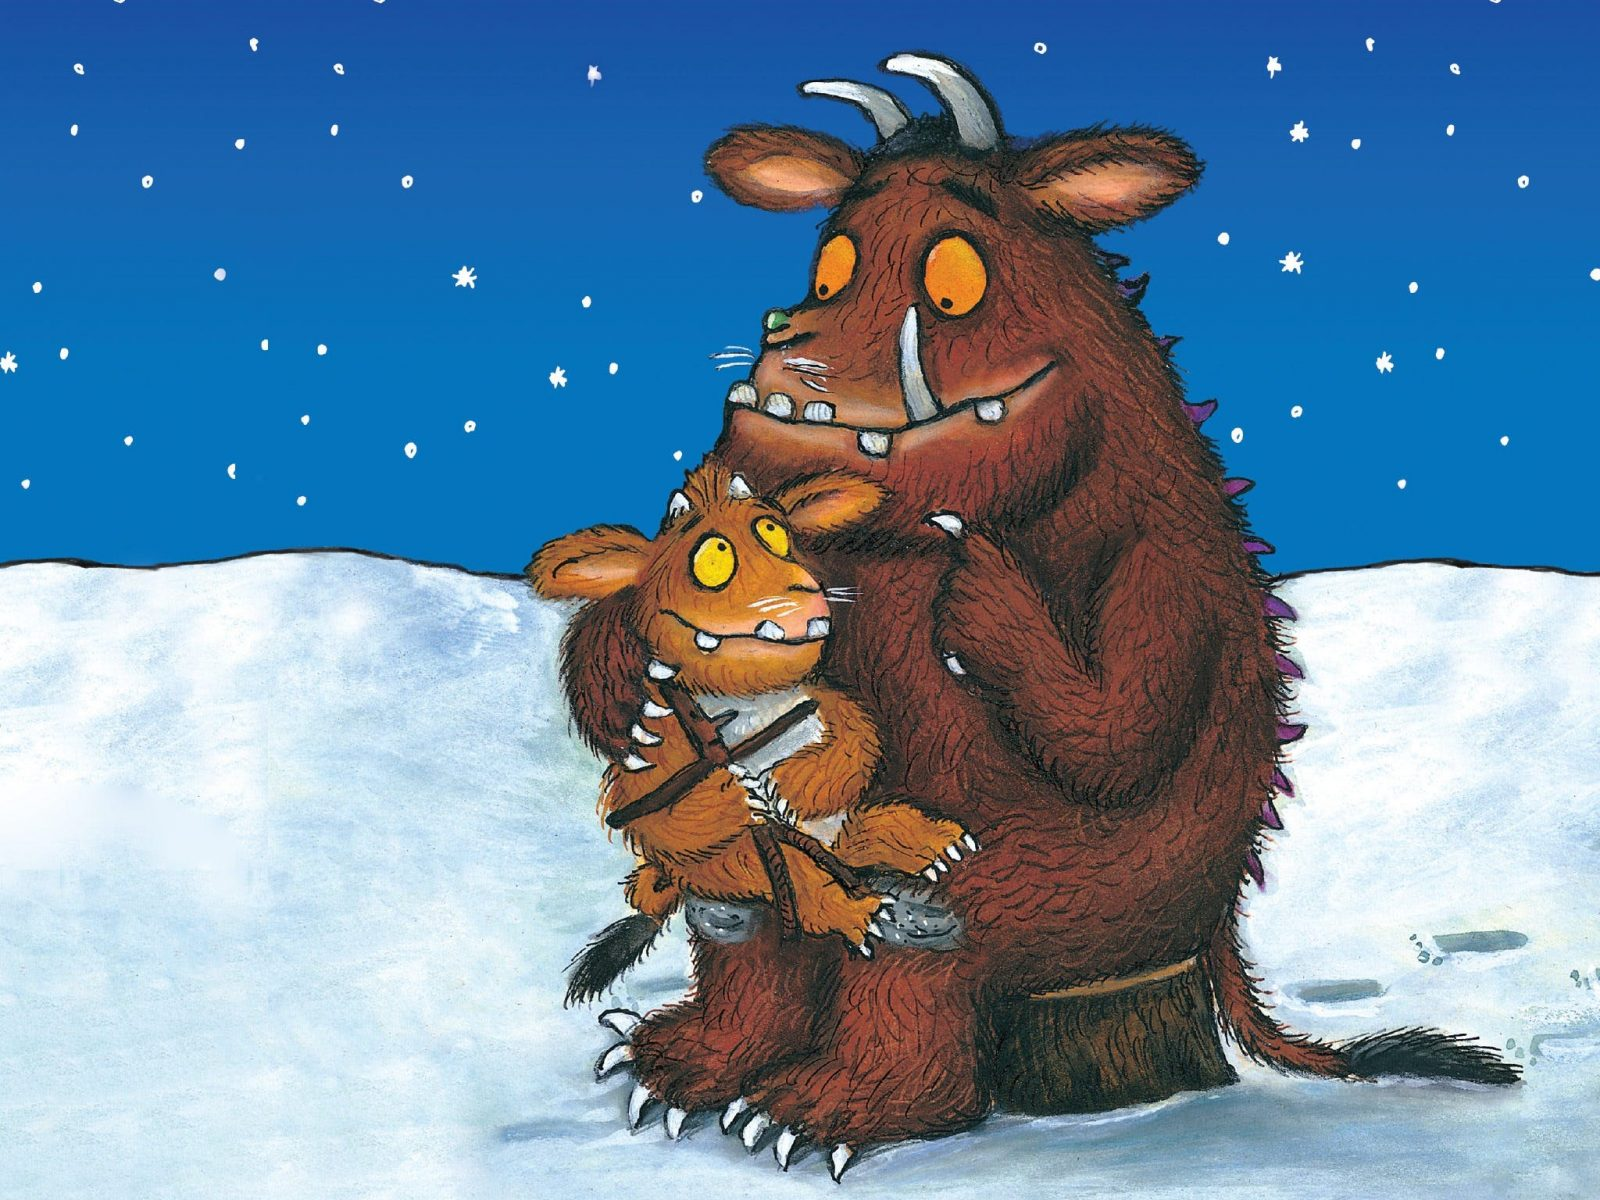 The Gruffalo's Child edit